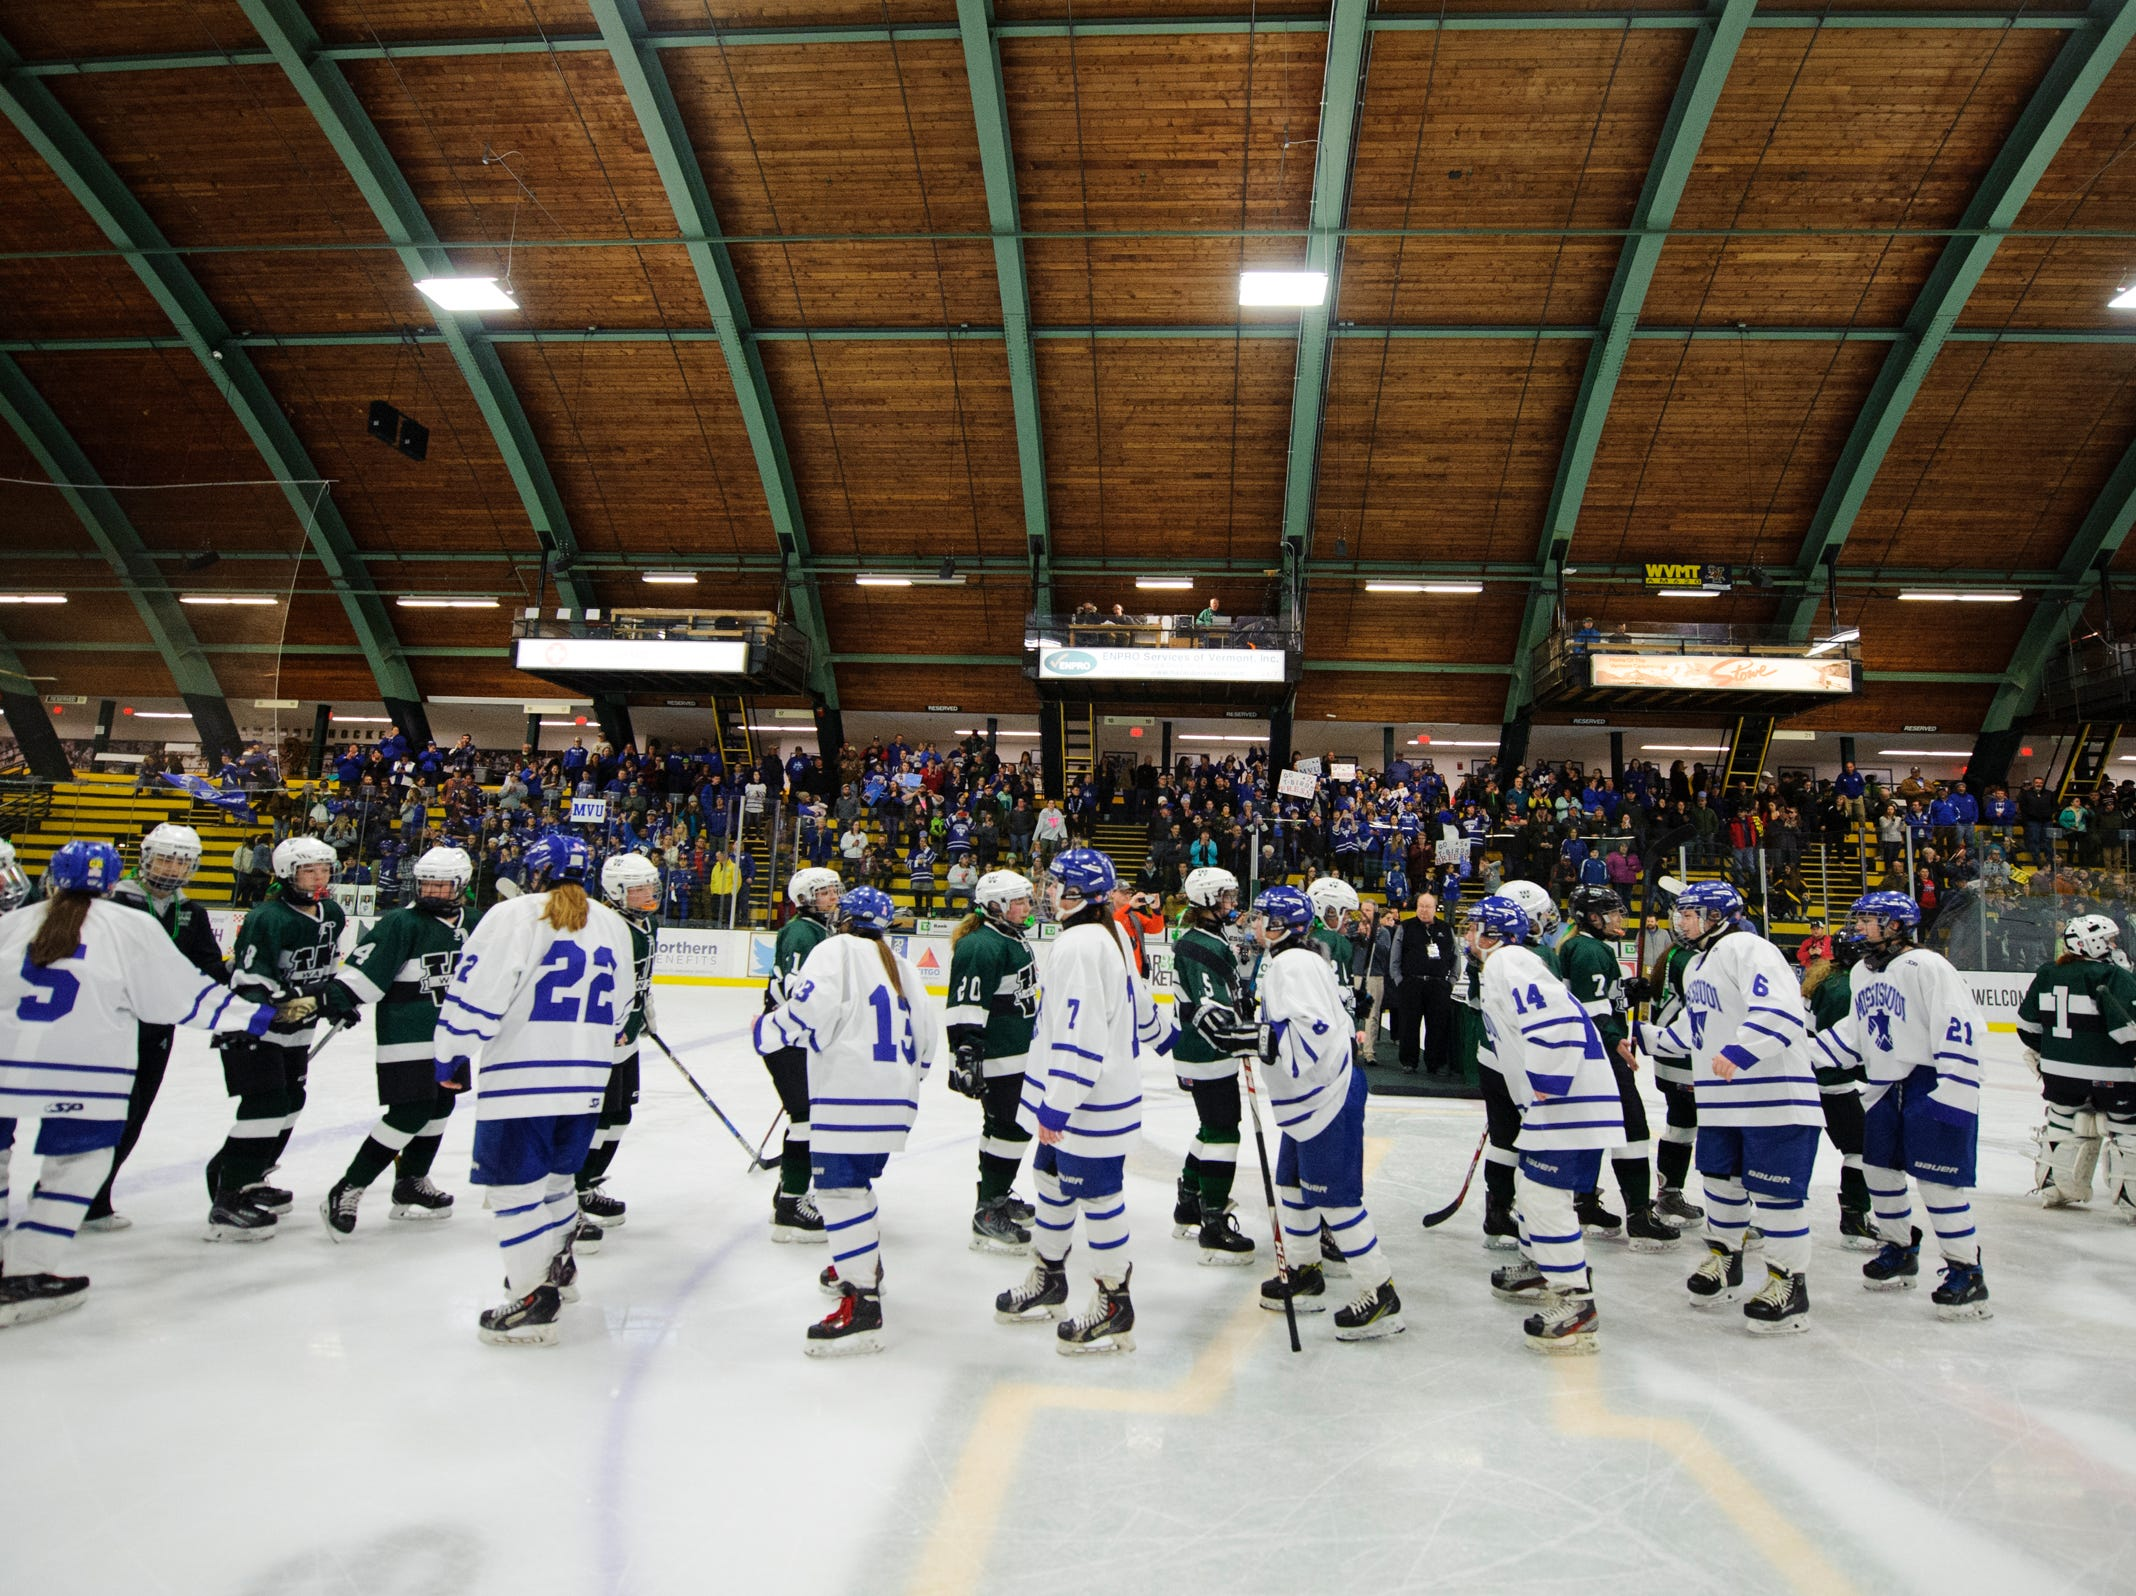 The teams shake hands during the DII girls hockey championship game between the Woodstock Wasps and the Missisquoi Thunderbirds at Gutterson Field House on Thursday night March 14, 2019 in Burlington, Vermont.